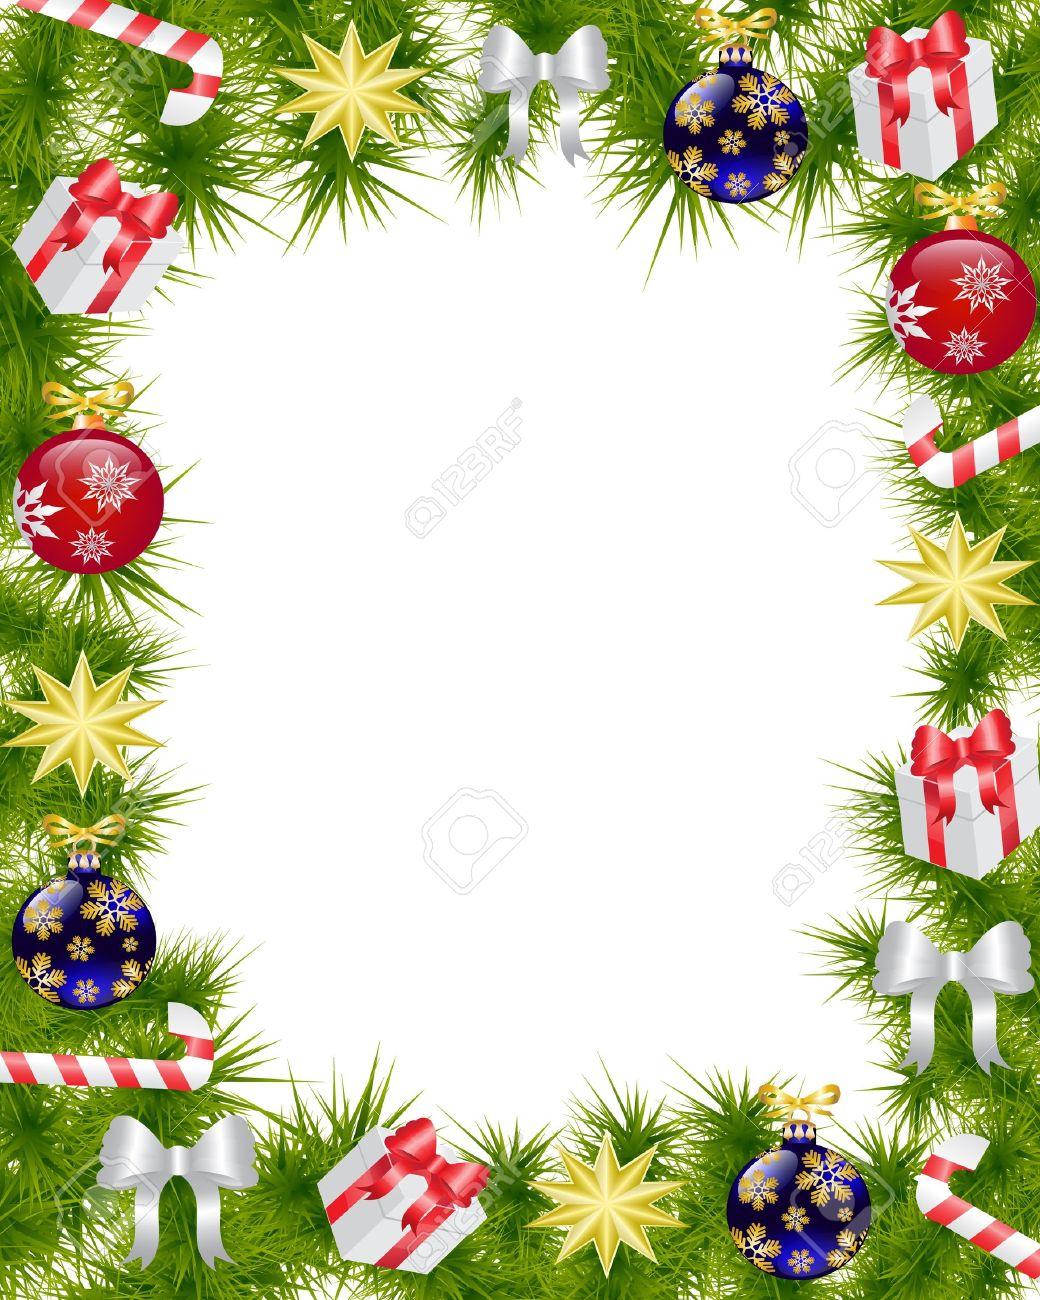 Christmas frame made of fir branches adorned with Christmas decorations, gifts, stars and candy Stock Vector - 16133081